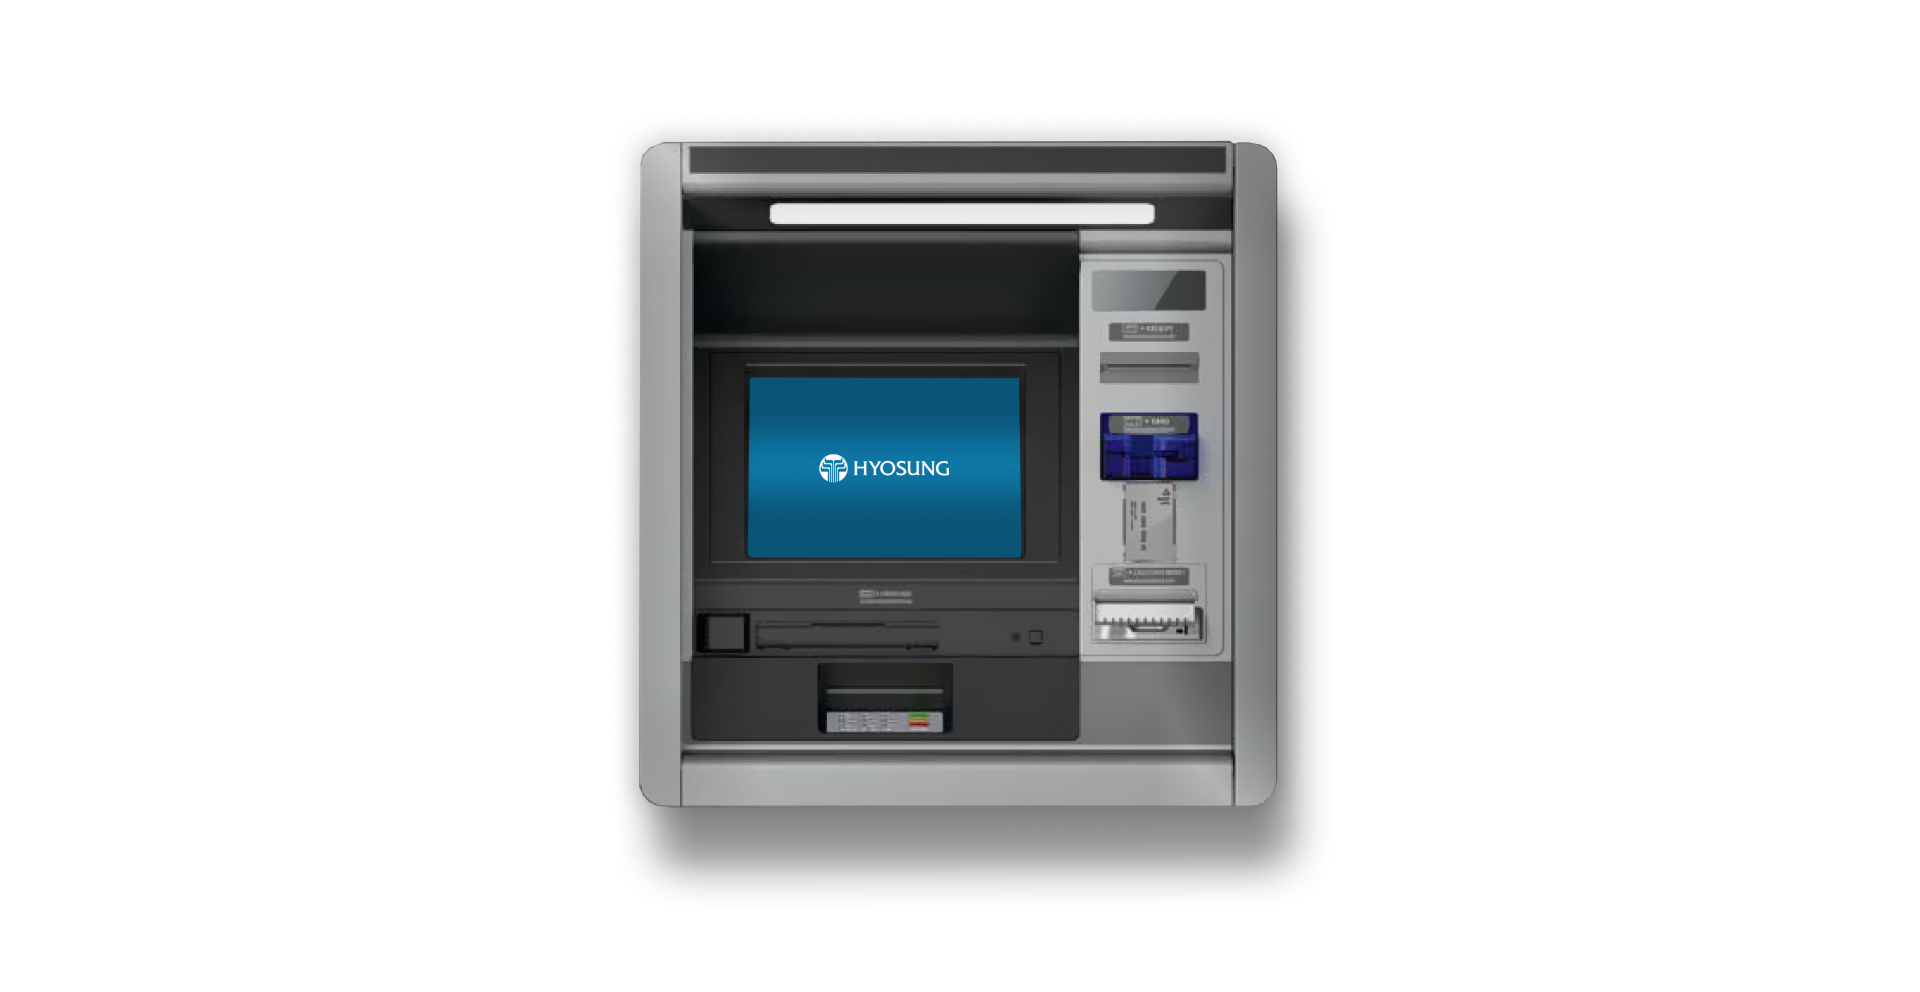 Walkup ATM offered by eGlobal ATM Services